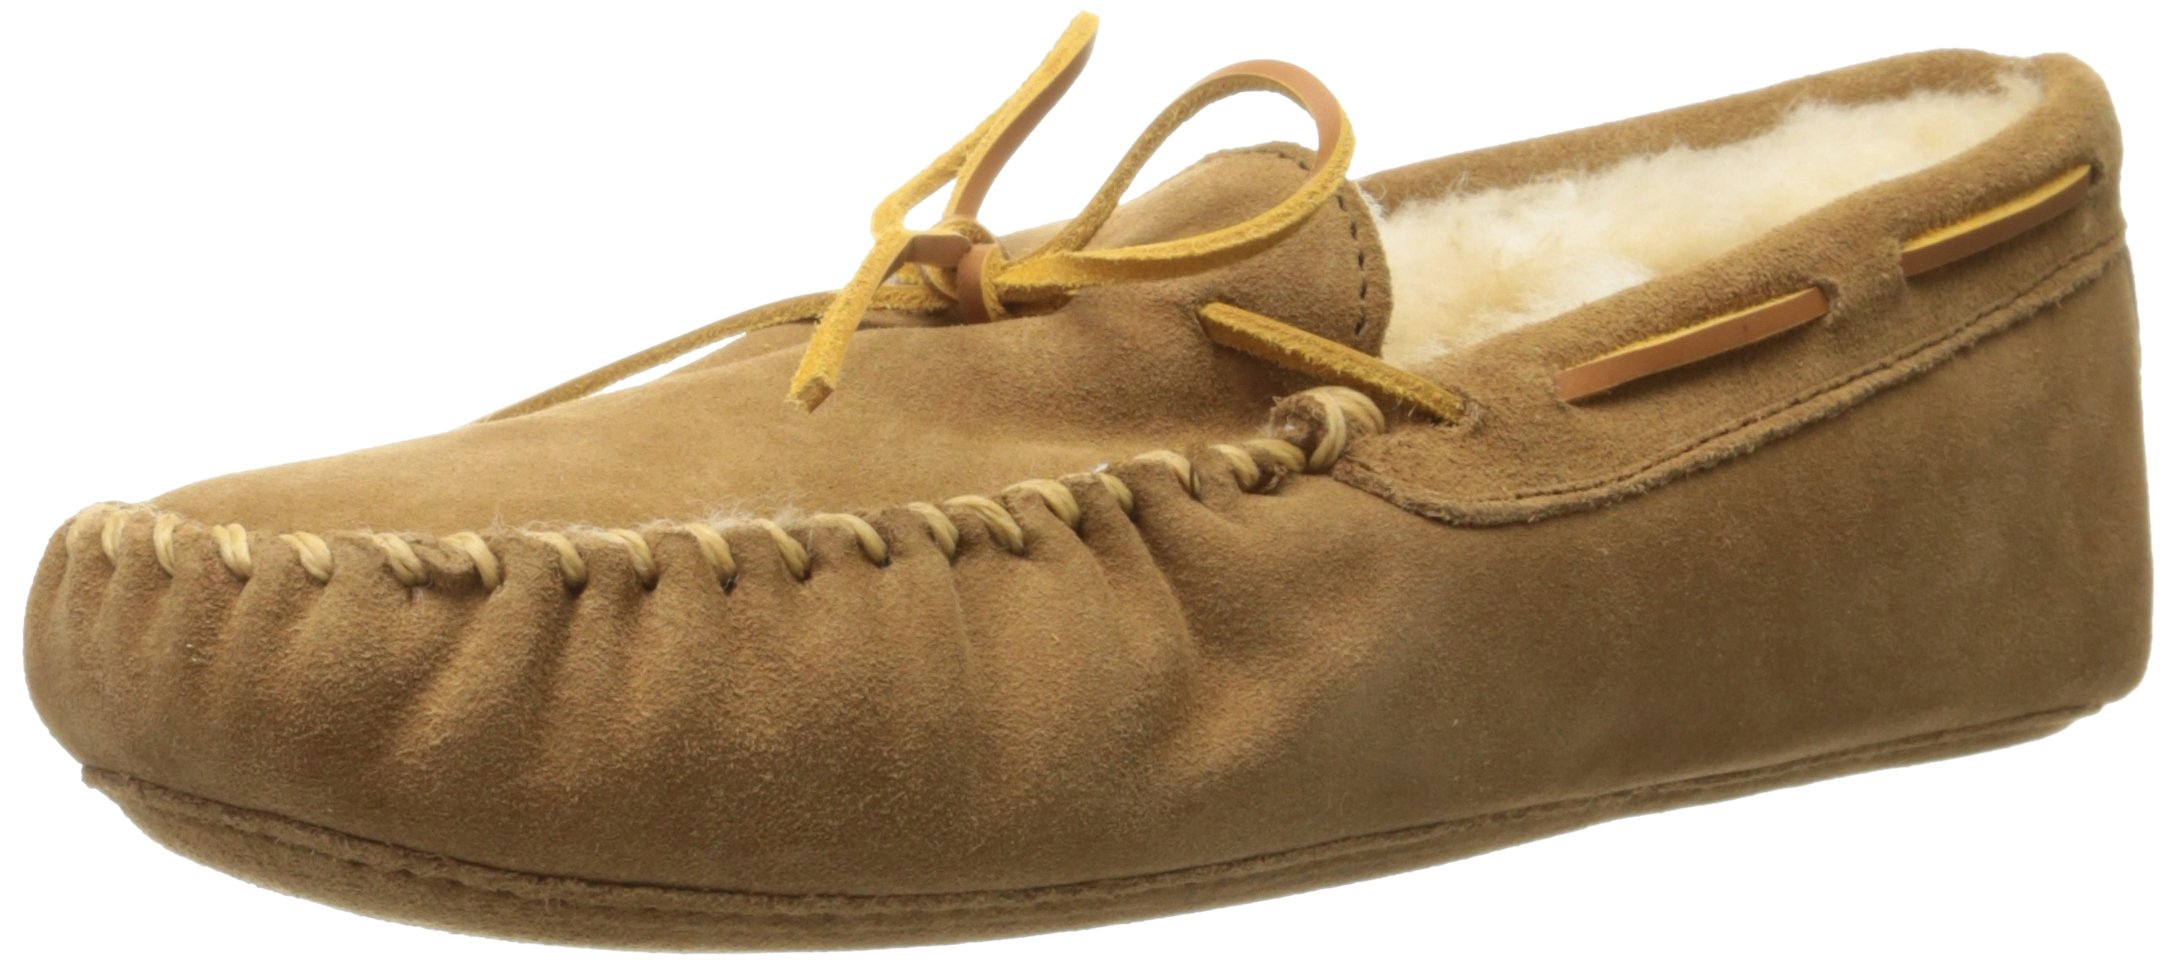 Minnetonka Men's Golden Tan Sheepskin Softsole Moccasin 12 D(M) US